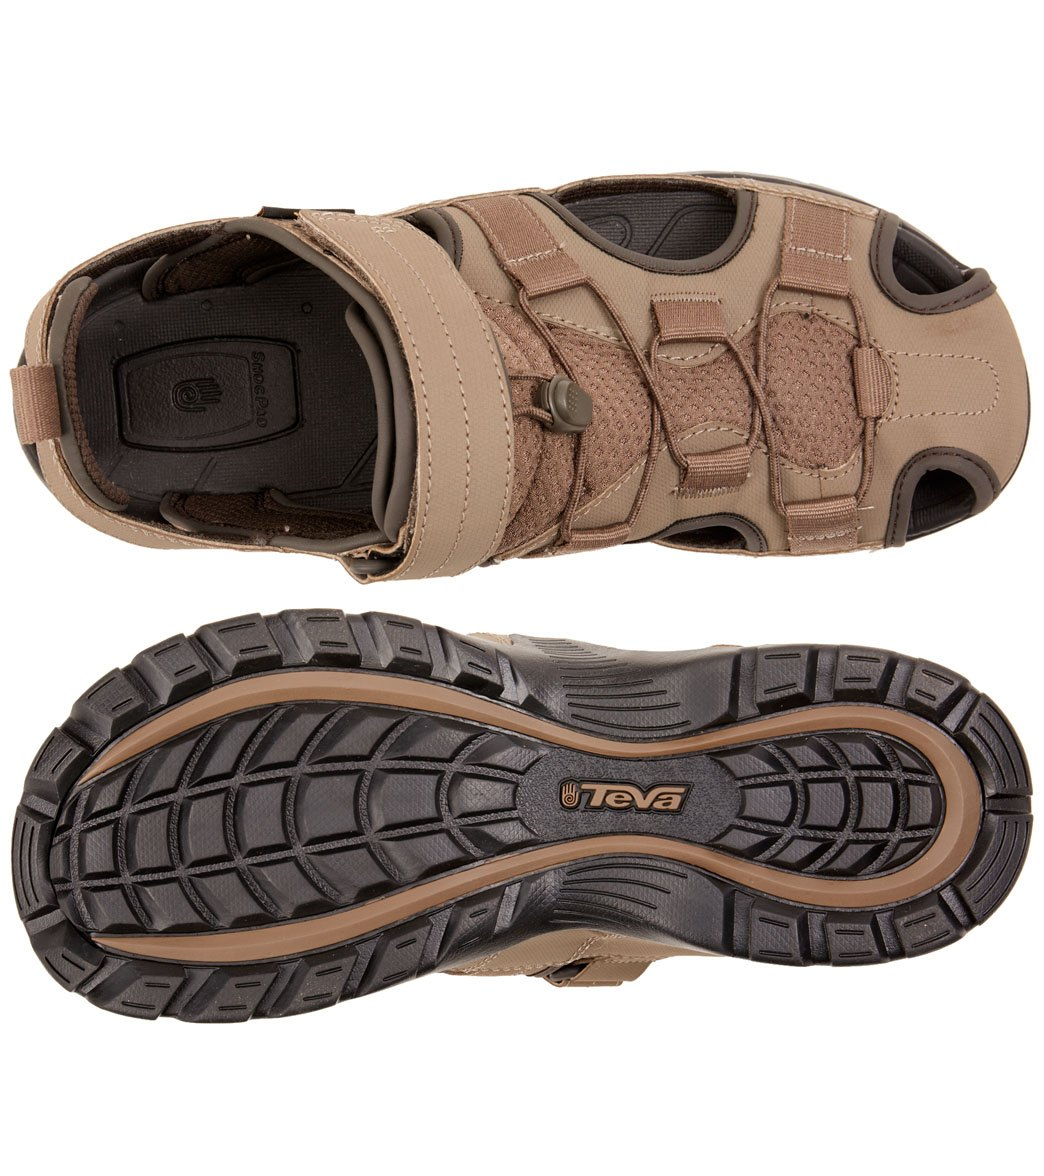 a510b1c83b5d Teva Men s Forebay 2 Sandal at SwimOutlet.com - Free Shipping